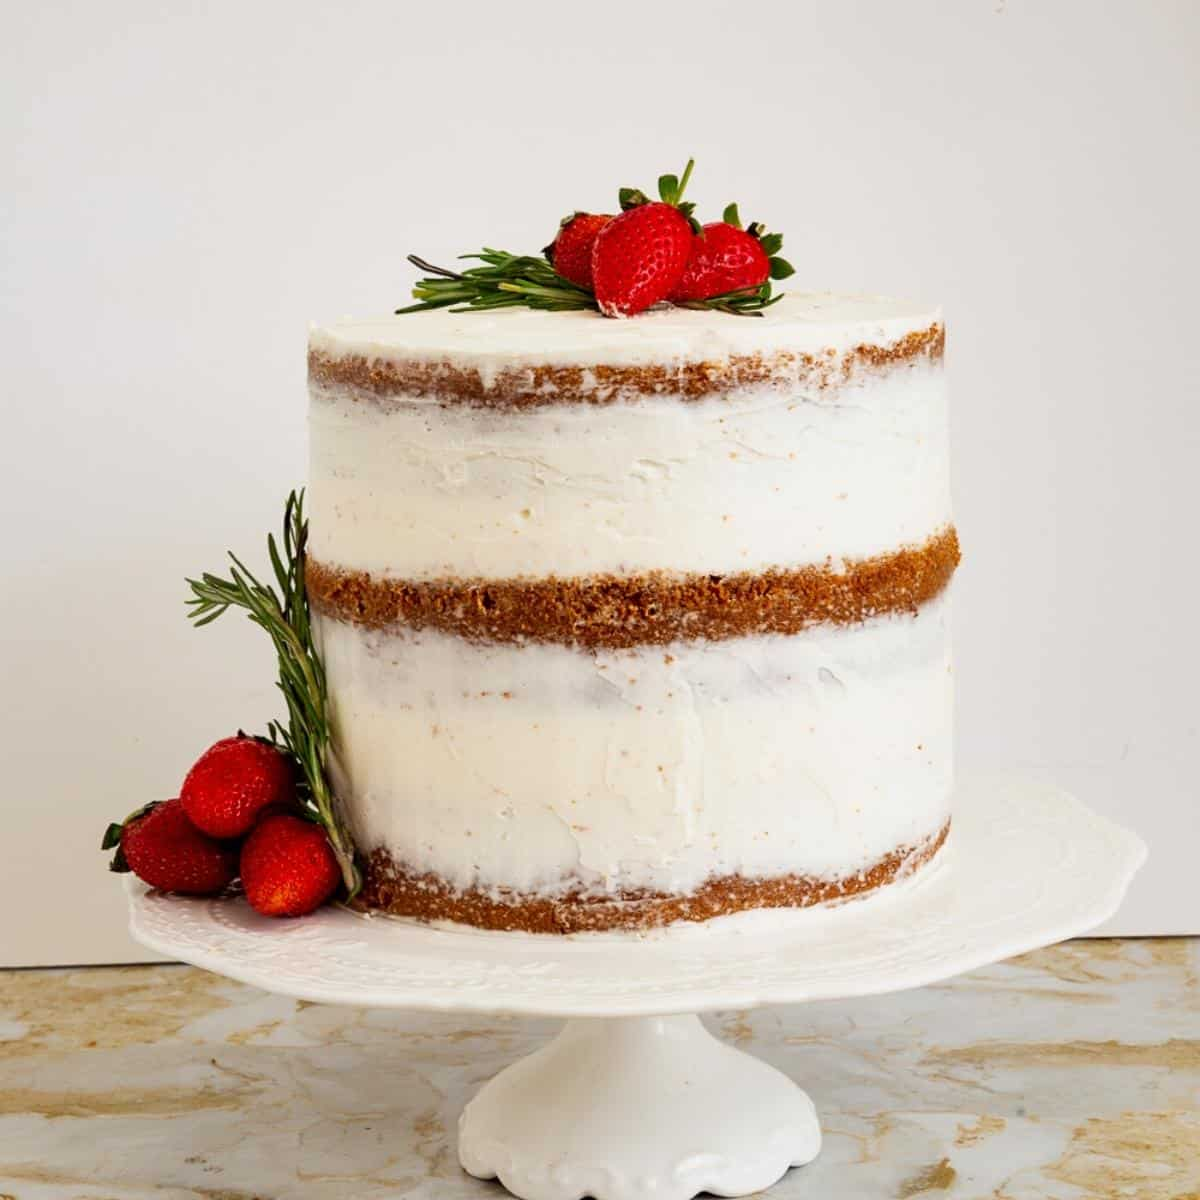 A naked vanilla cake on a cake stand with strawberries.